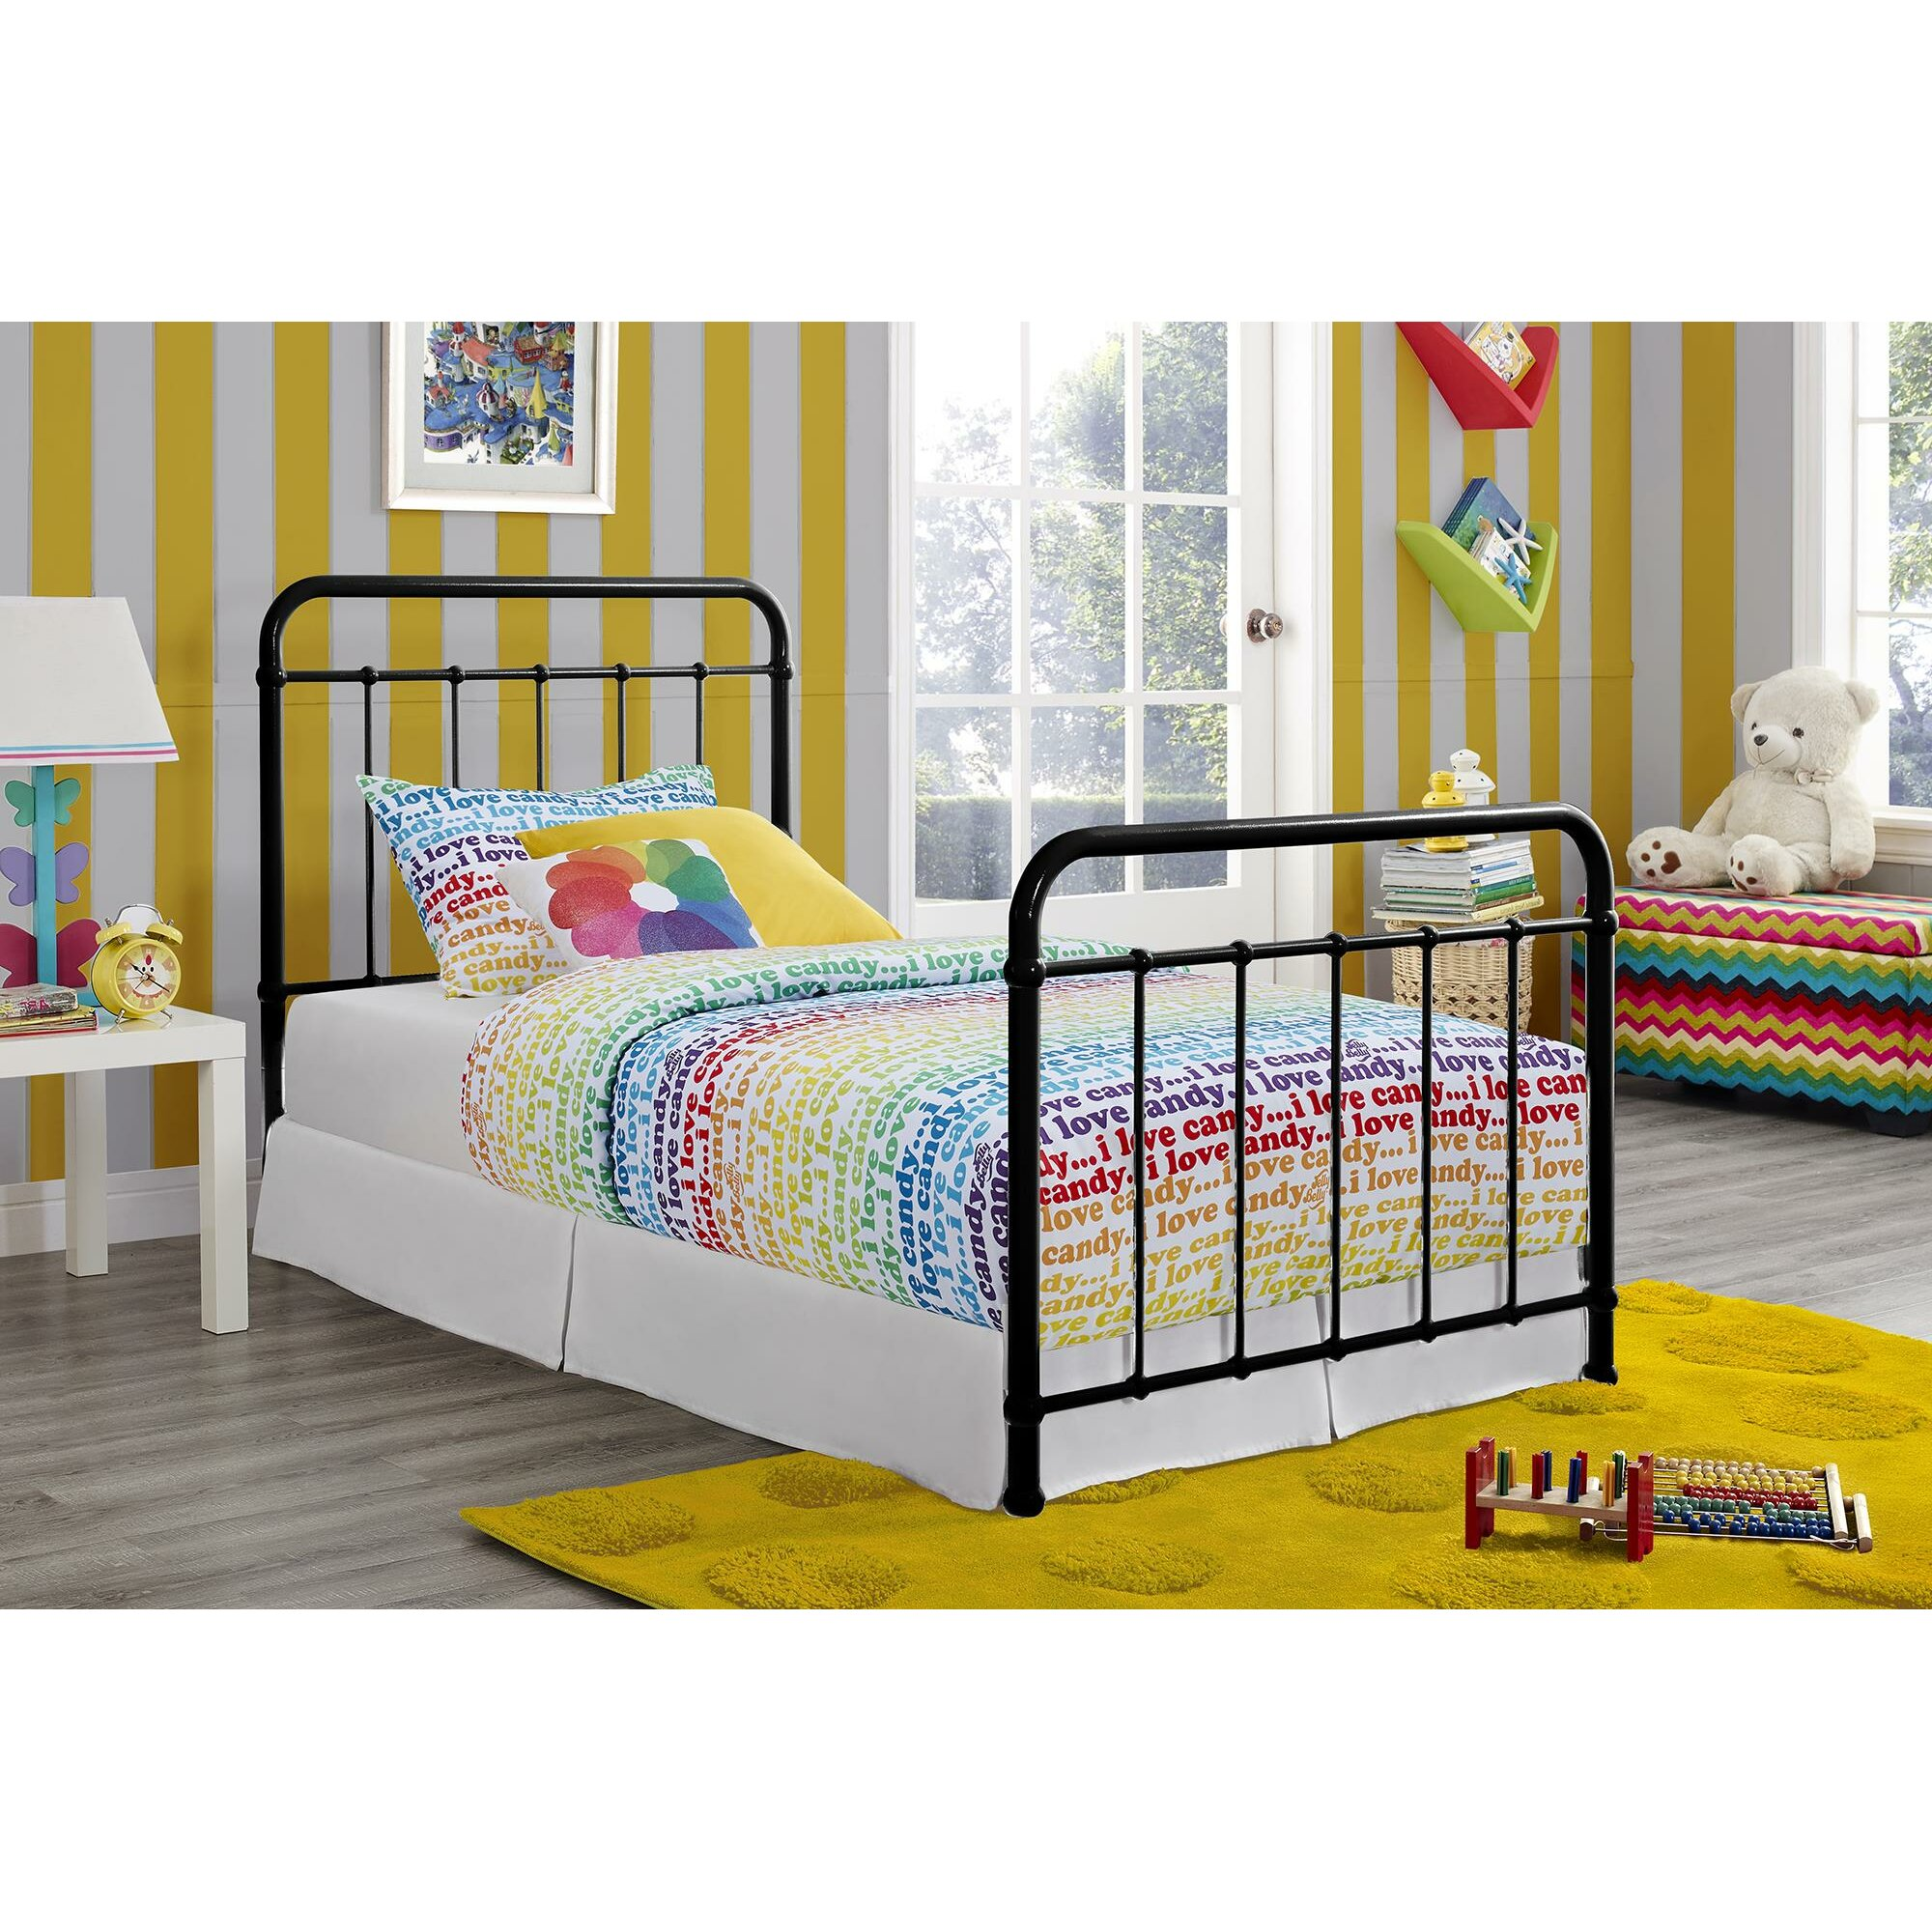 Dhp brooklyn panel bed reviews wayfairca for Brooklyn bedding sale